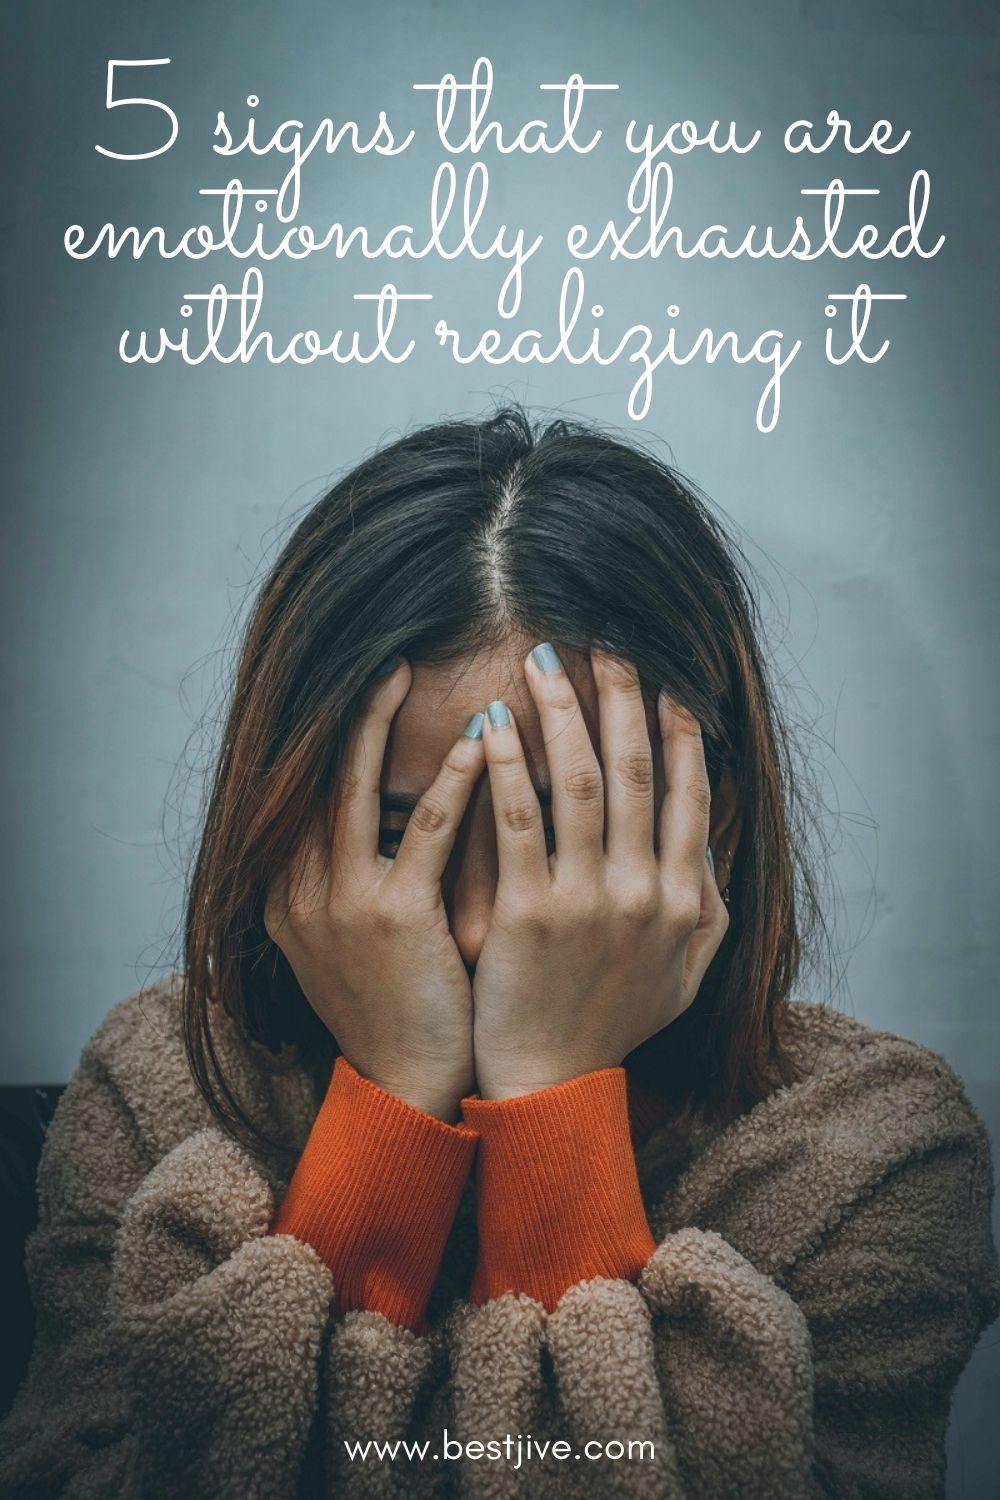 5 signs that you are emotionally exhausted without realizing it